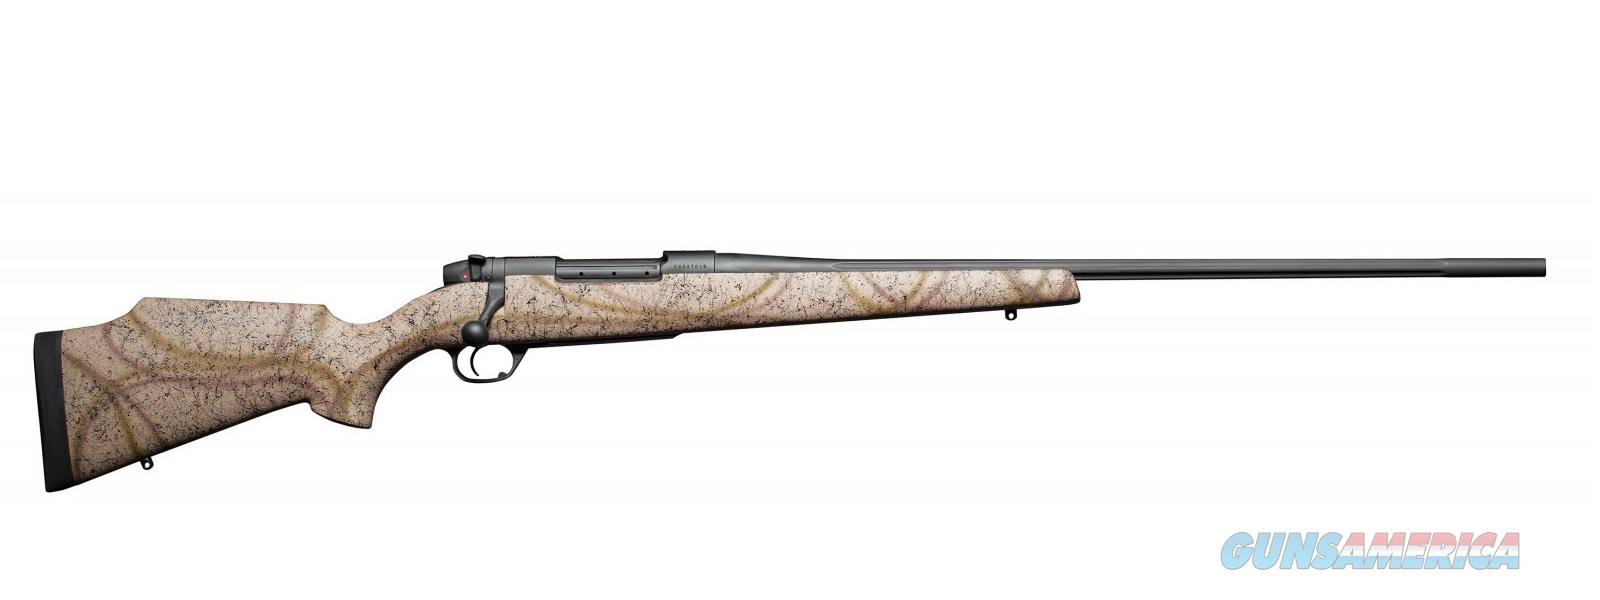 "Weatherby Mark V Outfitter RC 6.5-300 Wby Mag 28"" MOFM653WR8B  Guns > Rifles > Weatherby Rifles > Sporting"